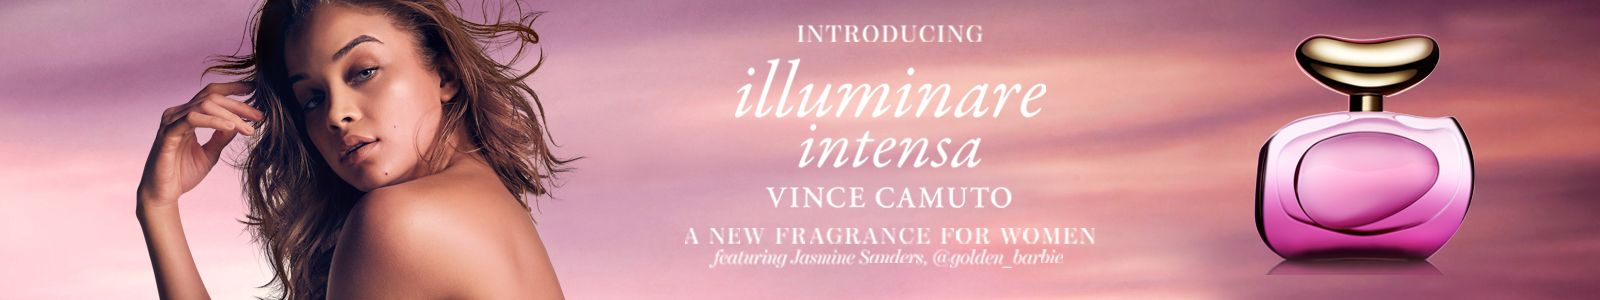 Introducing, illuminare intensa, Vince Camuto, A new Fragrance For Women